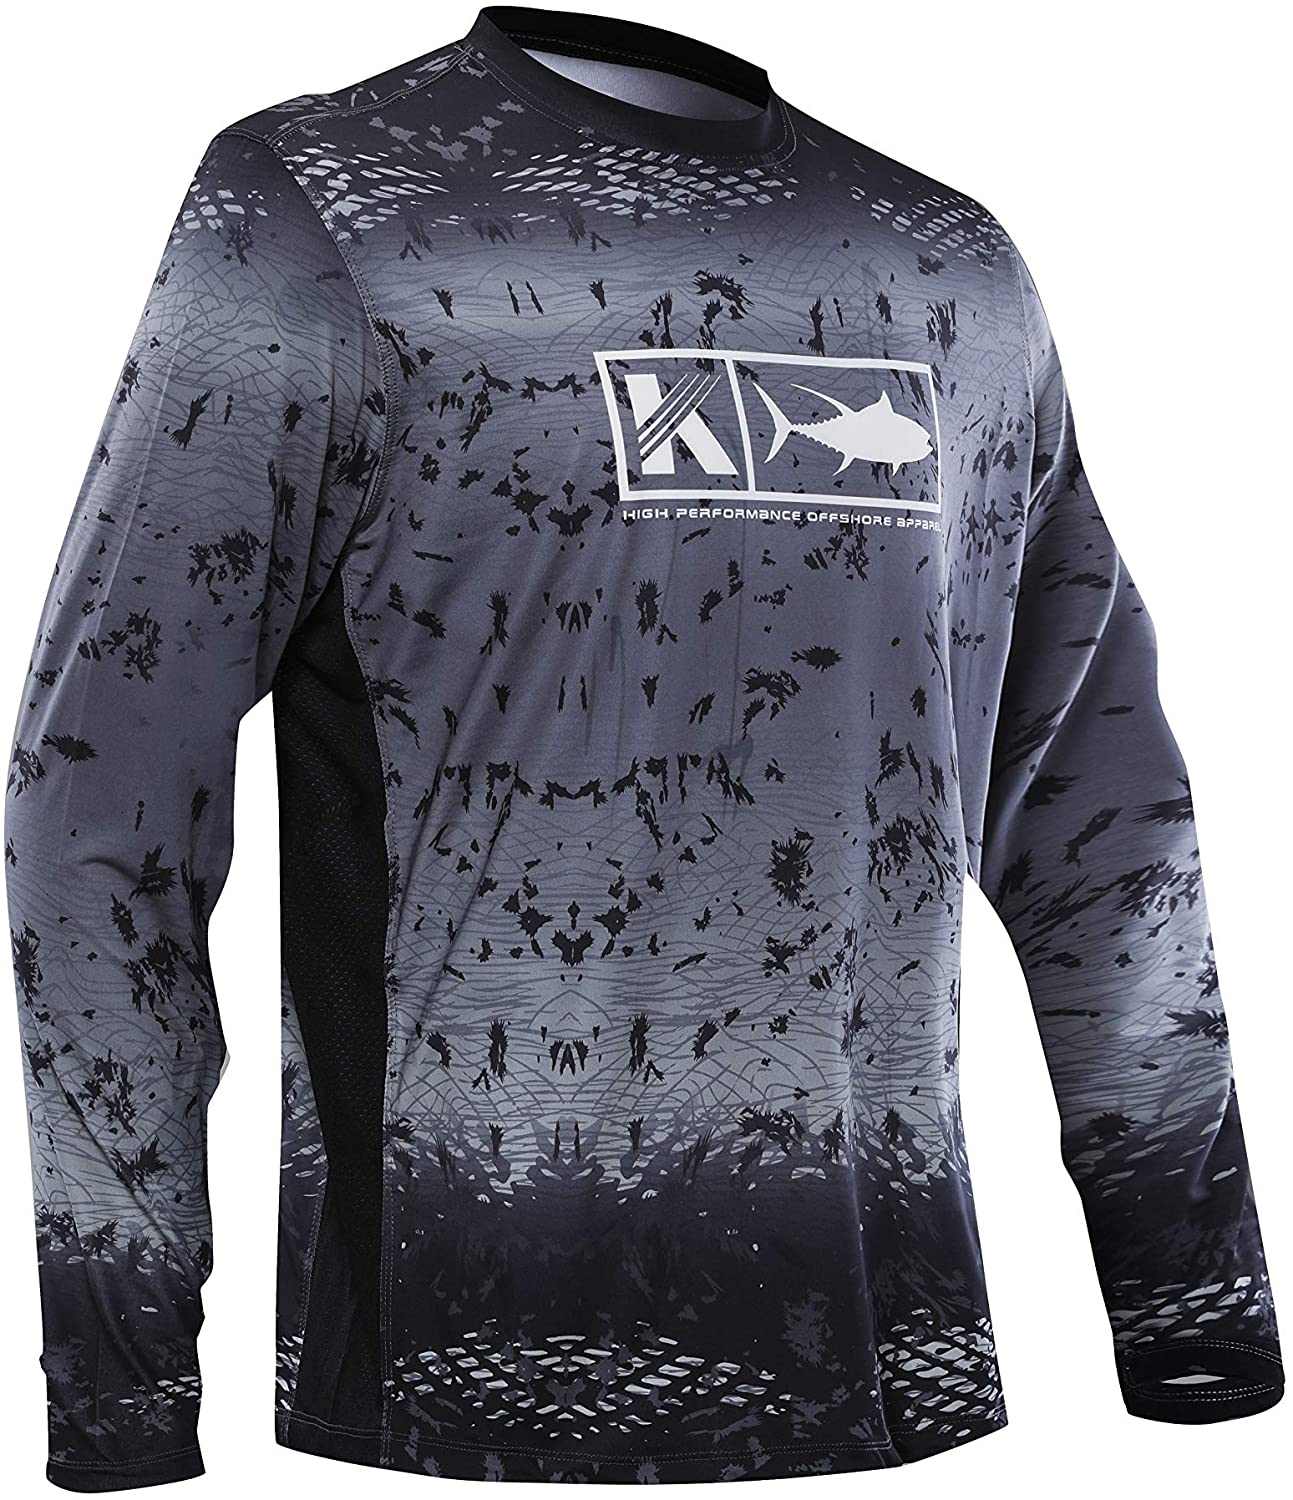 Performance Vented Fishing Shirt Long Sleeve Shirt Mesh Side Vents UPF 50 Dye Sublimation Print